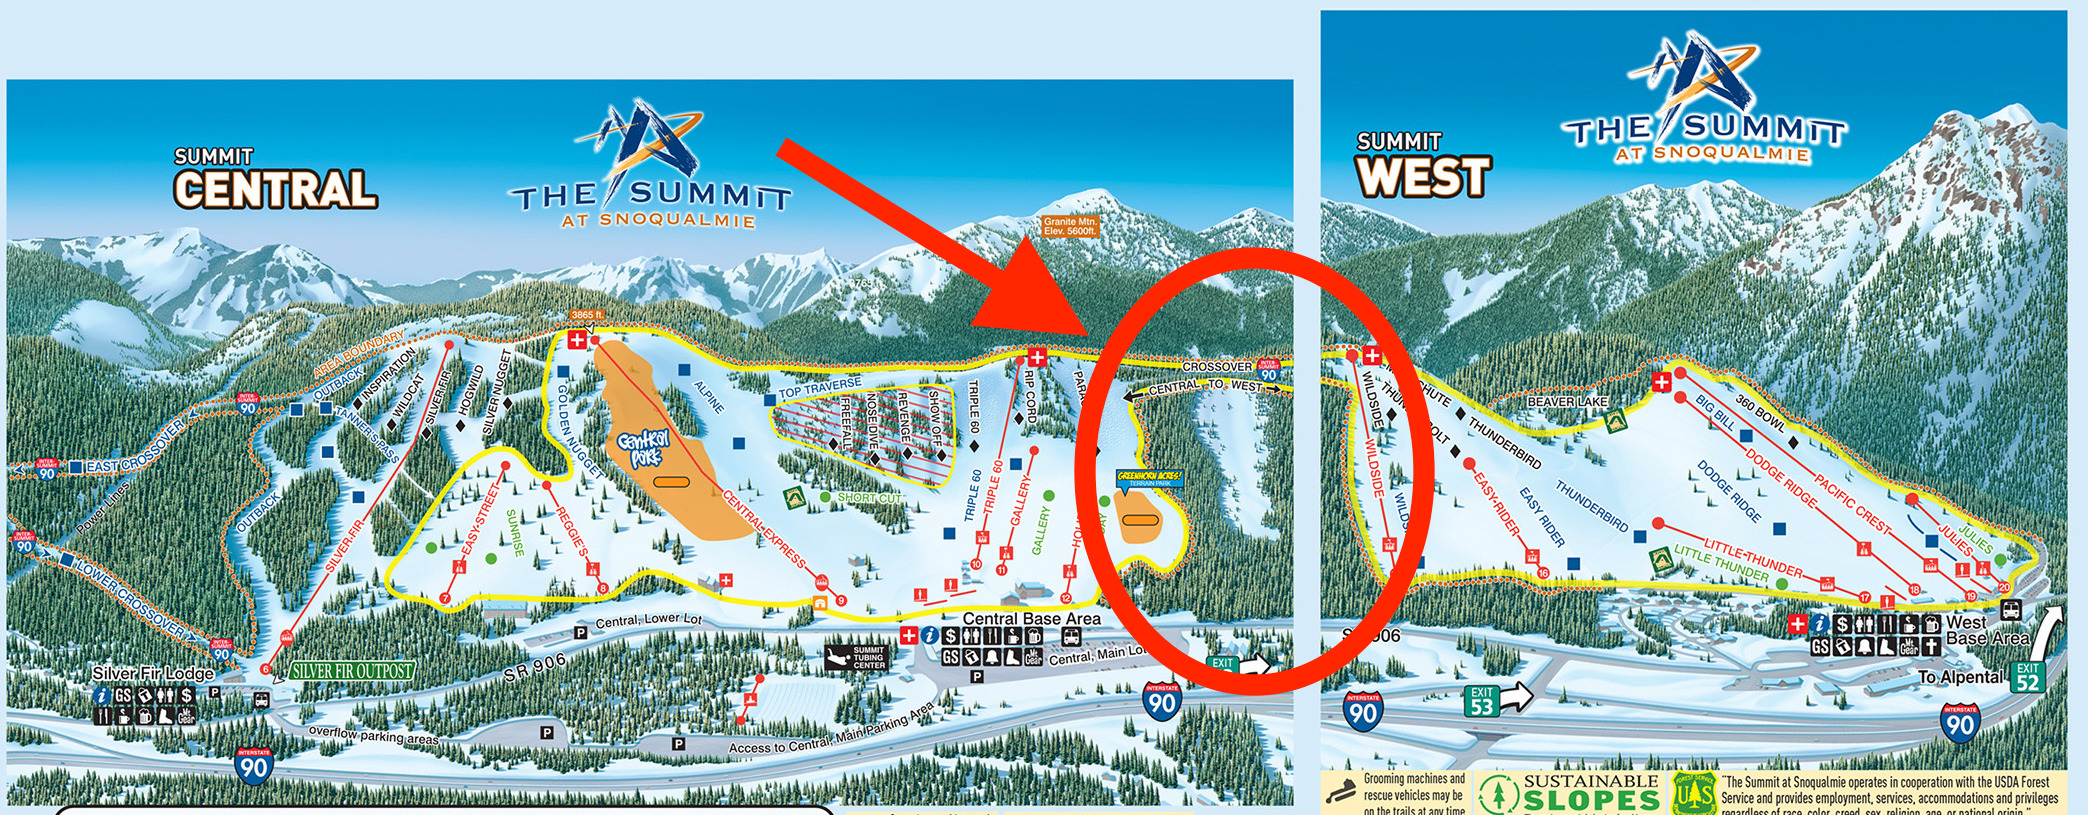 snoqualmie ski resort, wa buys land, will connect summit west